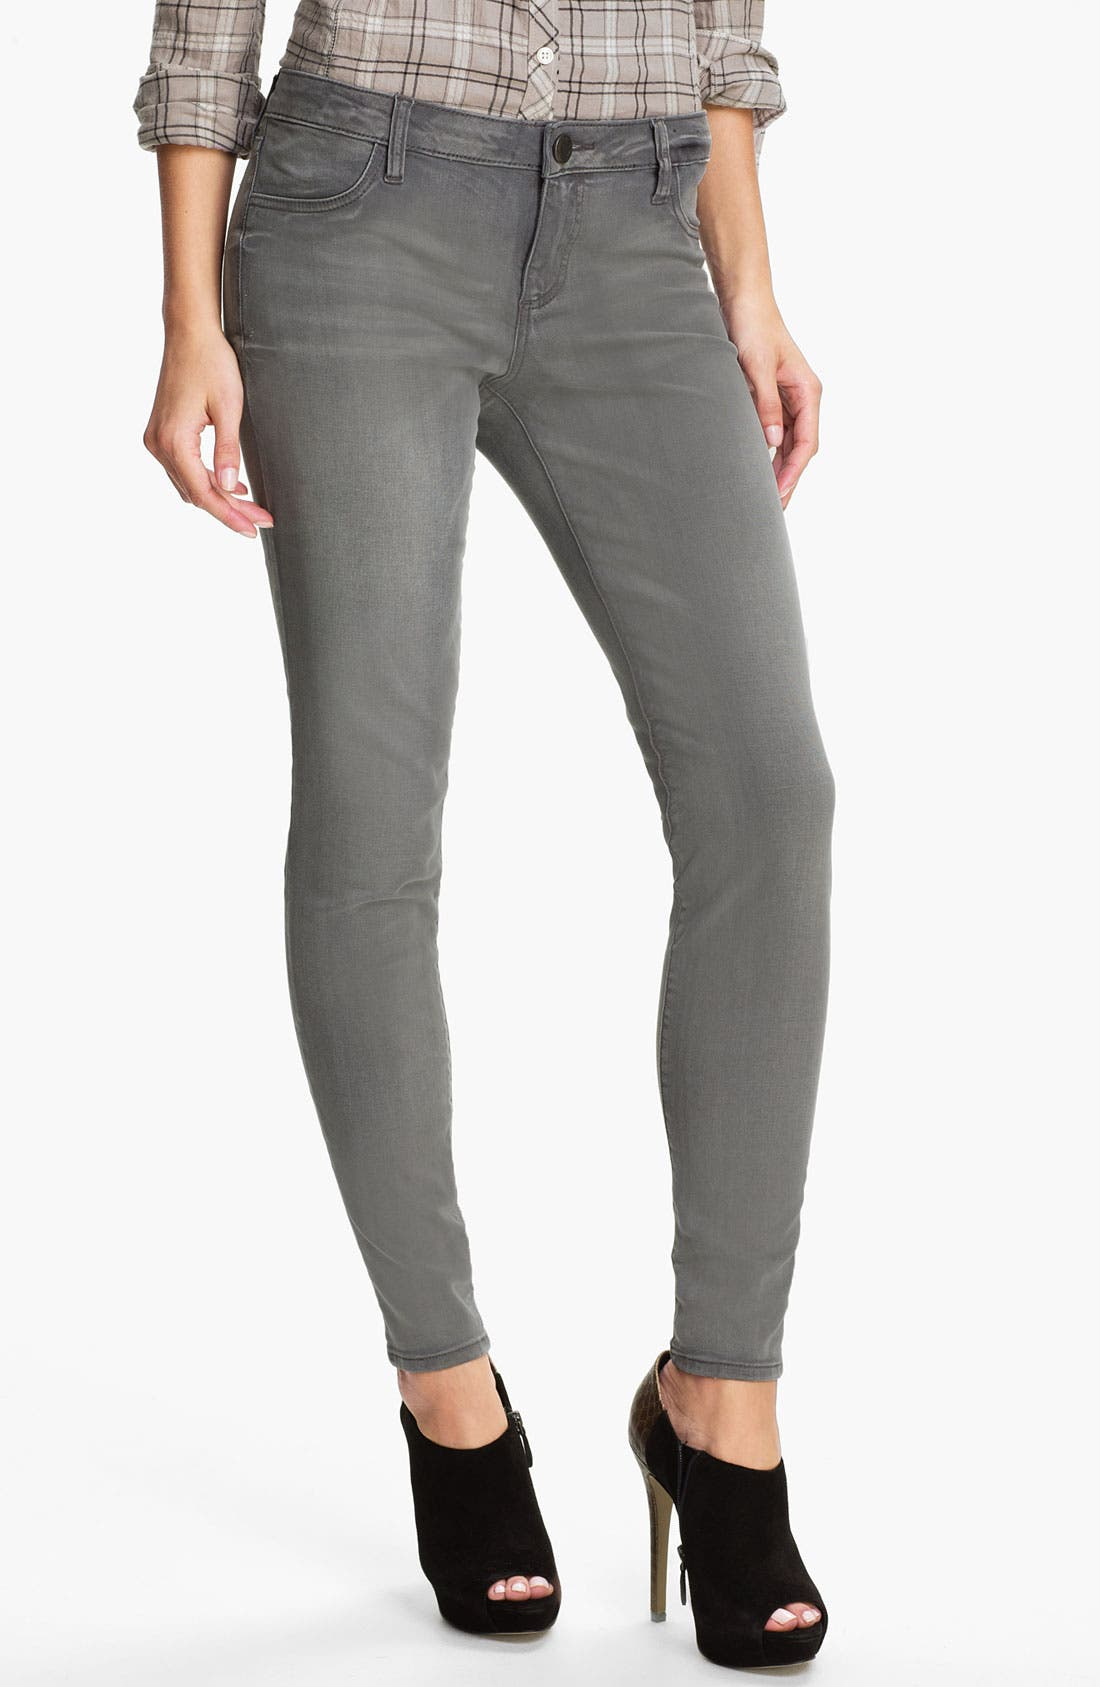 Alternate Image 1 Selected - KUT from the Kloth 'Jennifer' Skinny Stretch Jeans (Deluxe) (Online Exclusive)